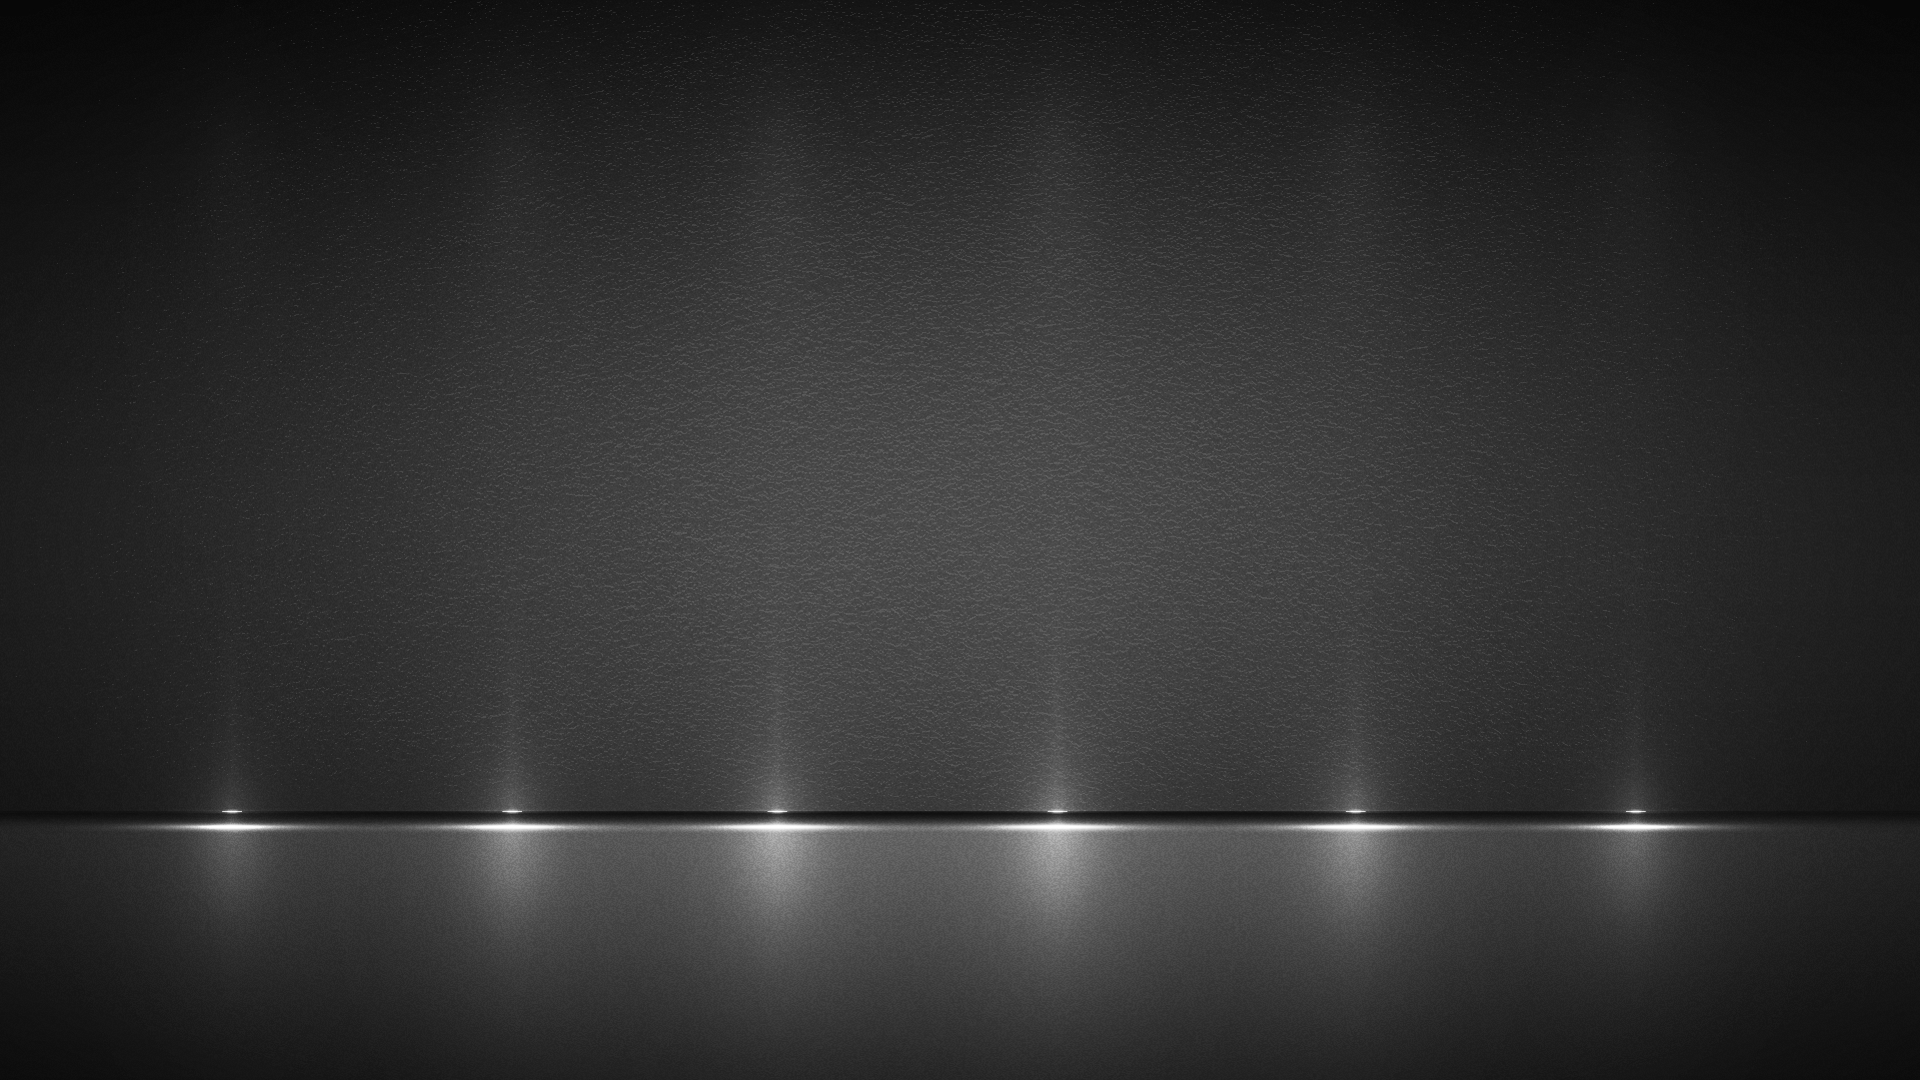 Elegant grey illumination background presentations